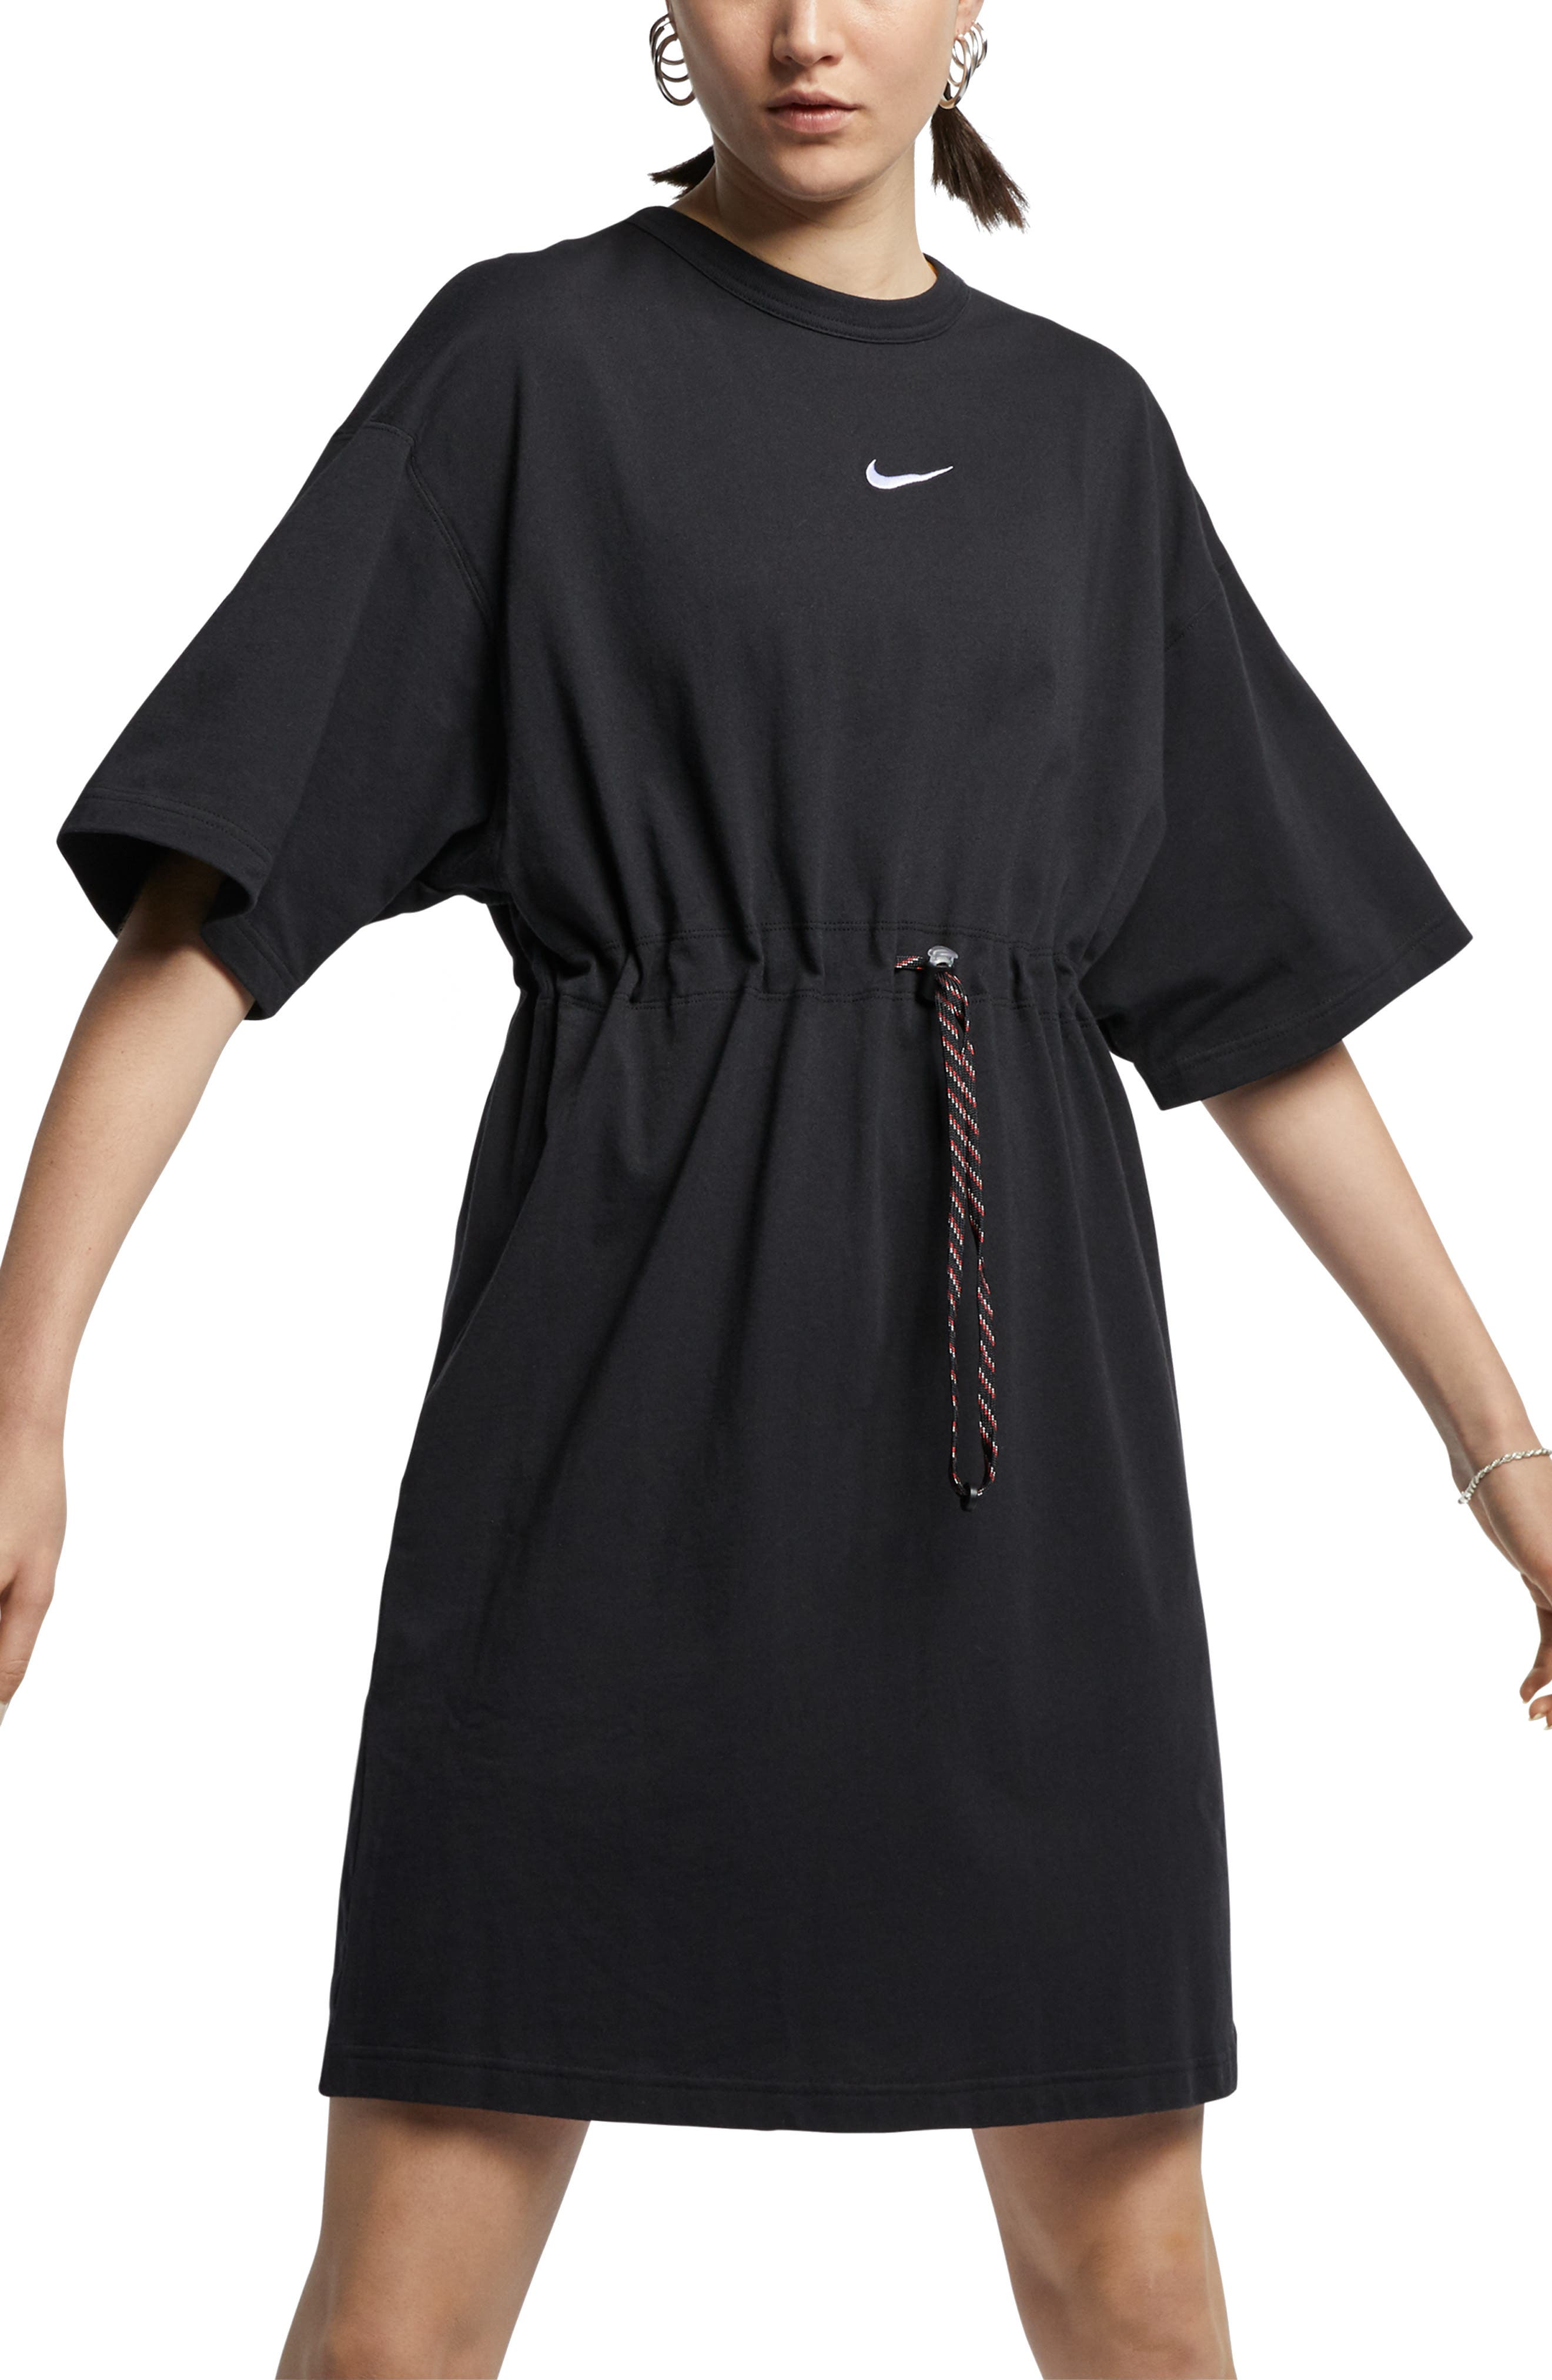 Nike Nikelab Collection Dress, Black